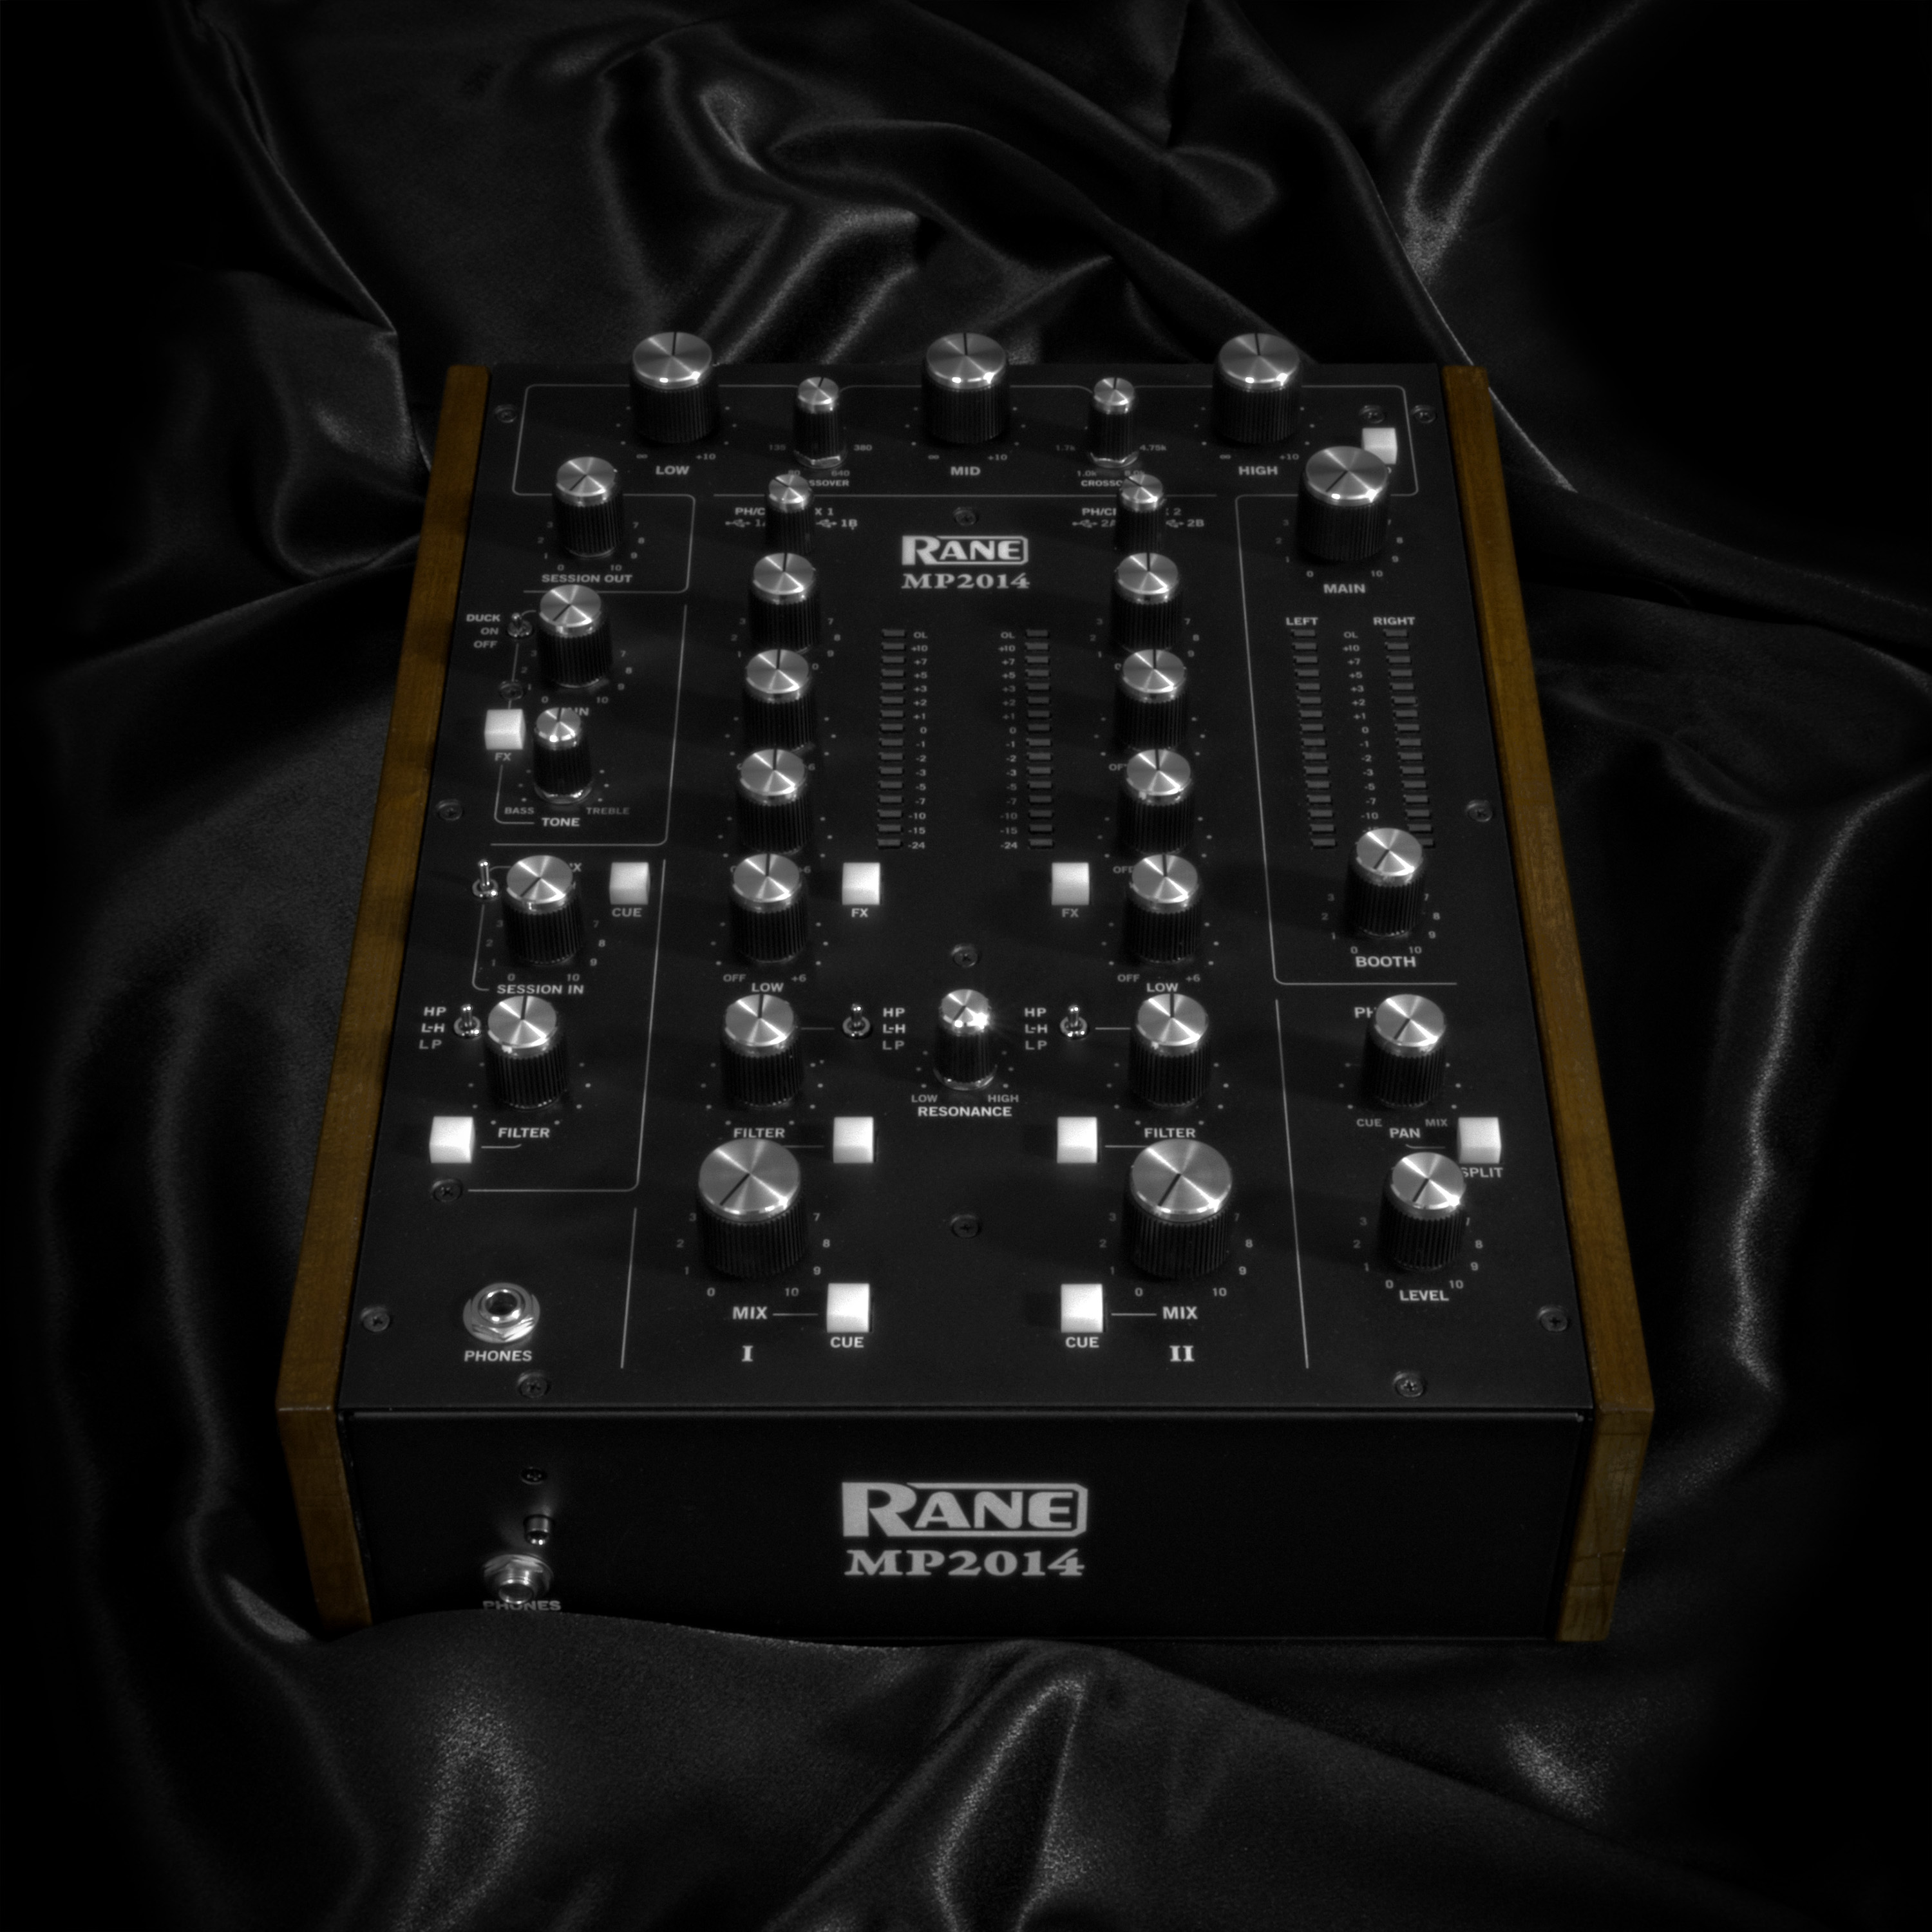 Knobs: Rane's MP2014.